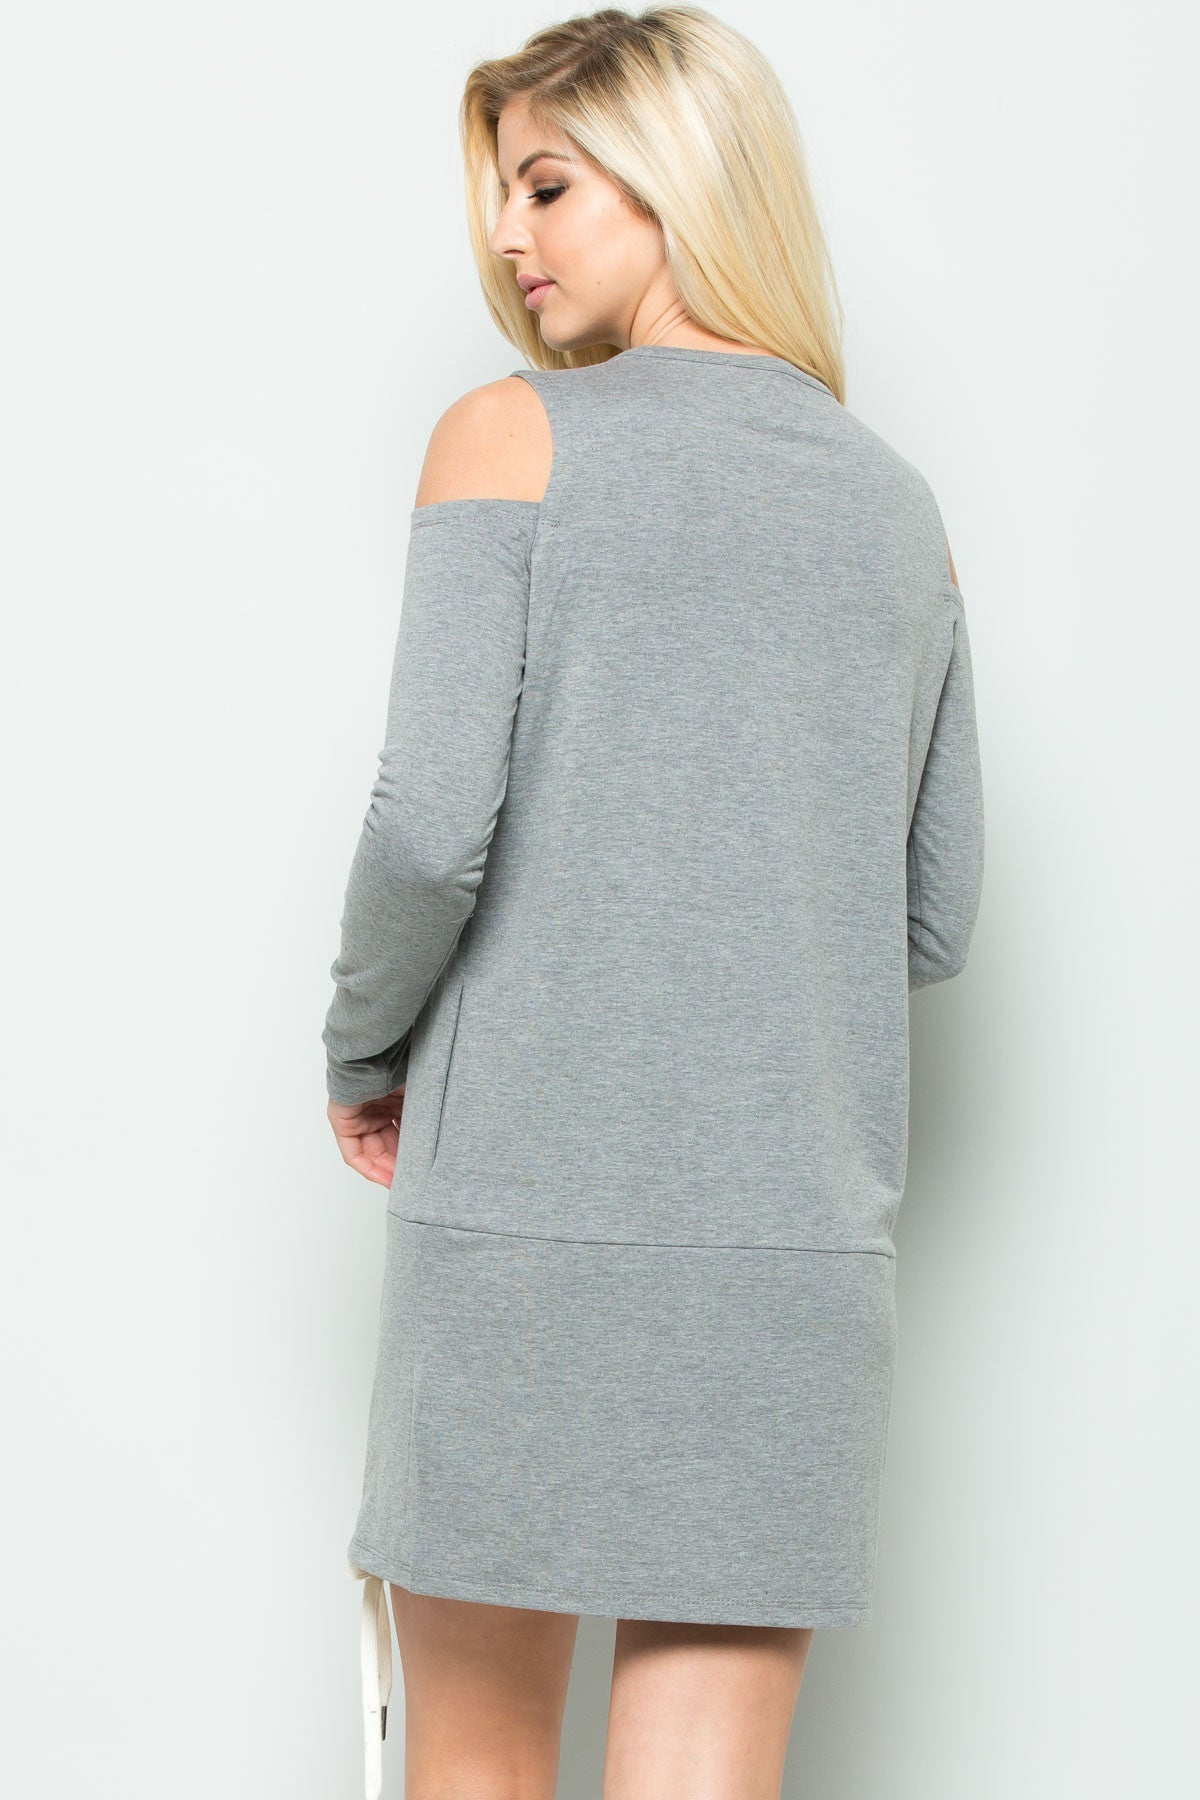 Cold Shoulder Lace Up Sweater Dress in Heather Grey - Dresses - My Yuccie - 3